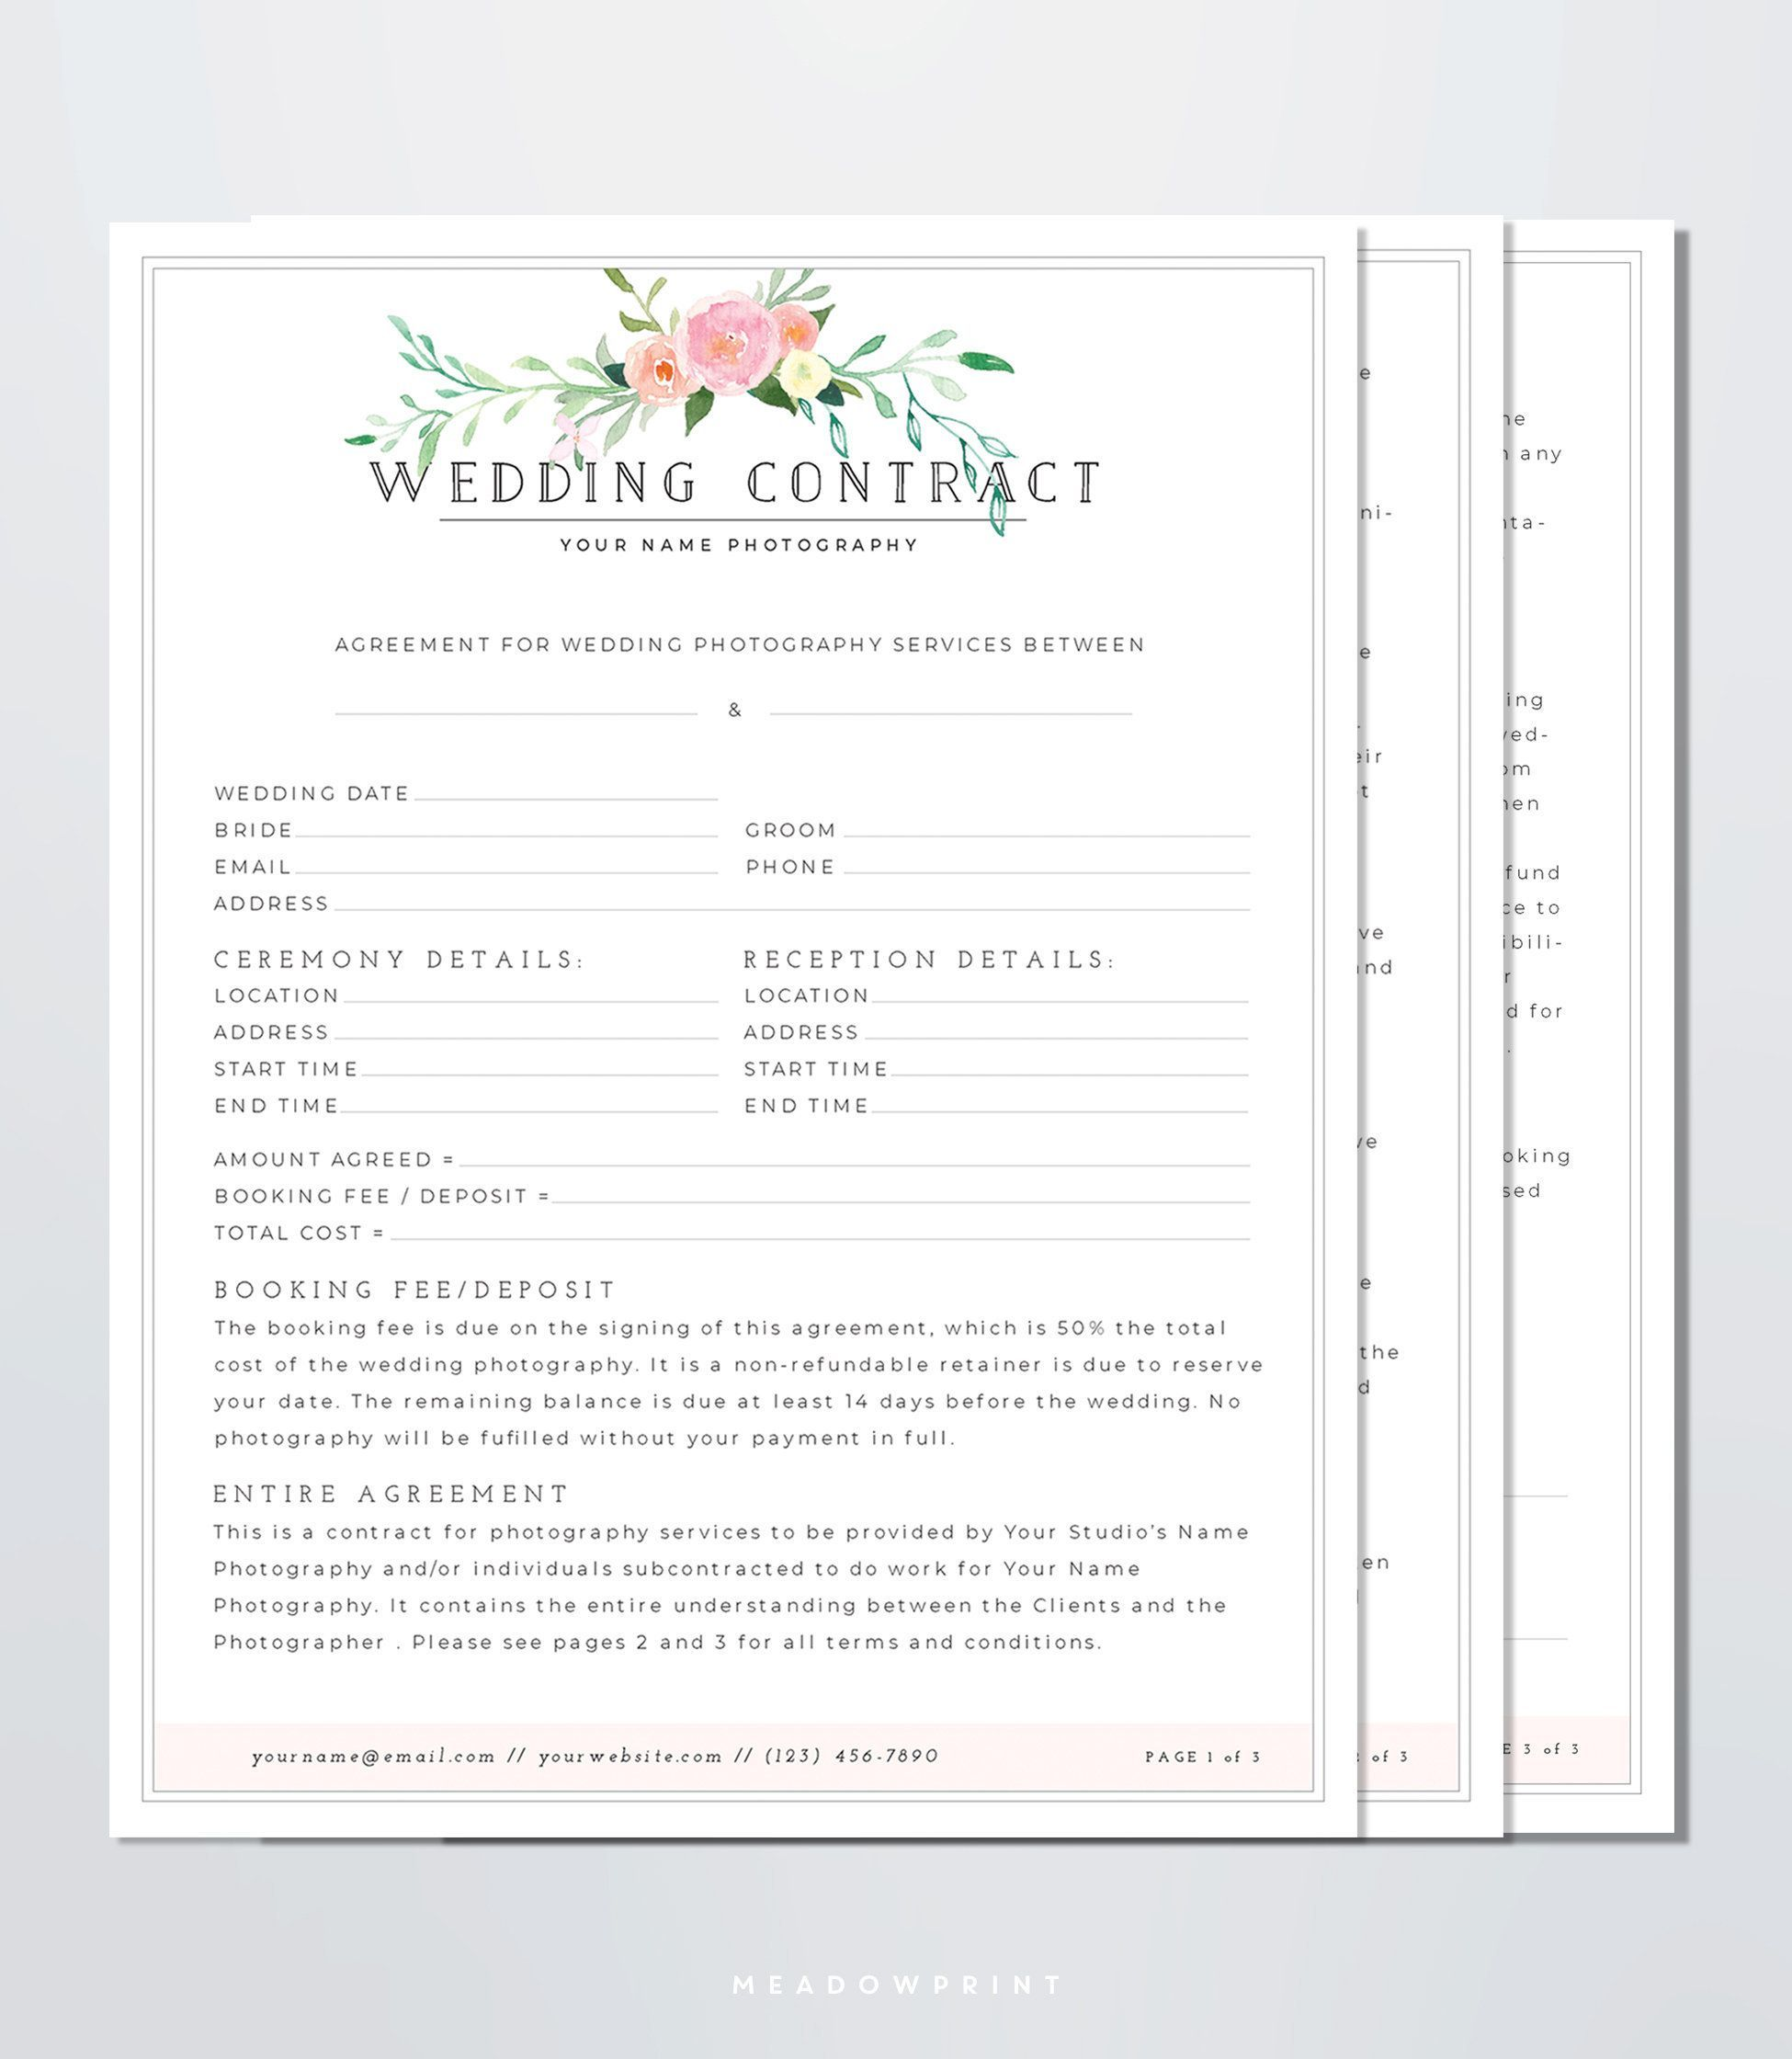 Wedding Photography Contract Template Client Booking Form Etsy Weddi Wedding Photography Contract Template Photography Contract Wedding Photography Contract Contract for photography services template